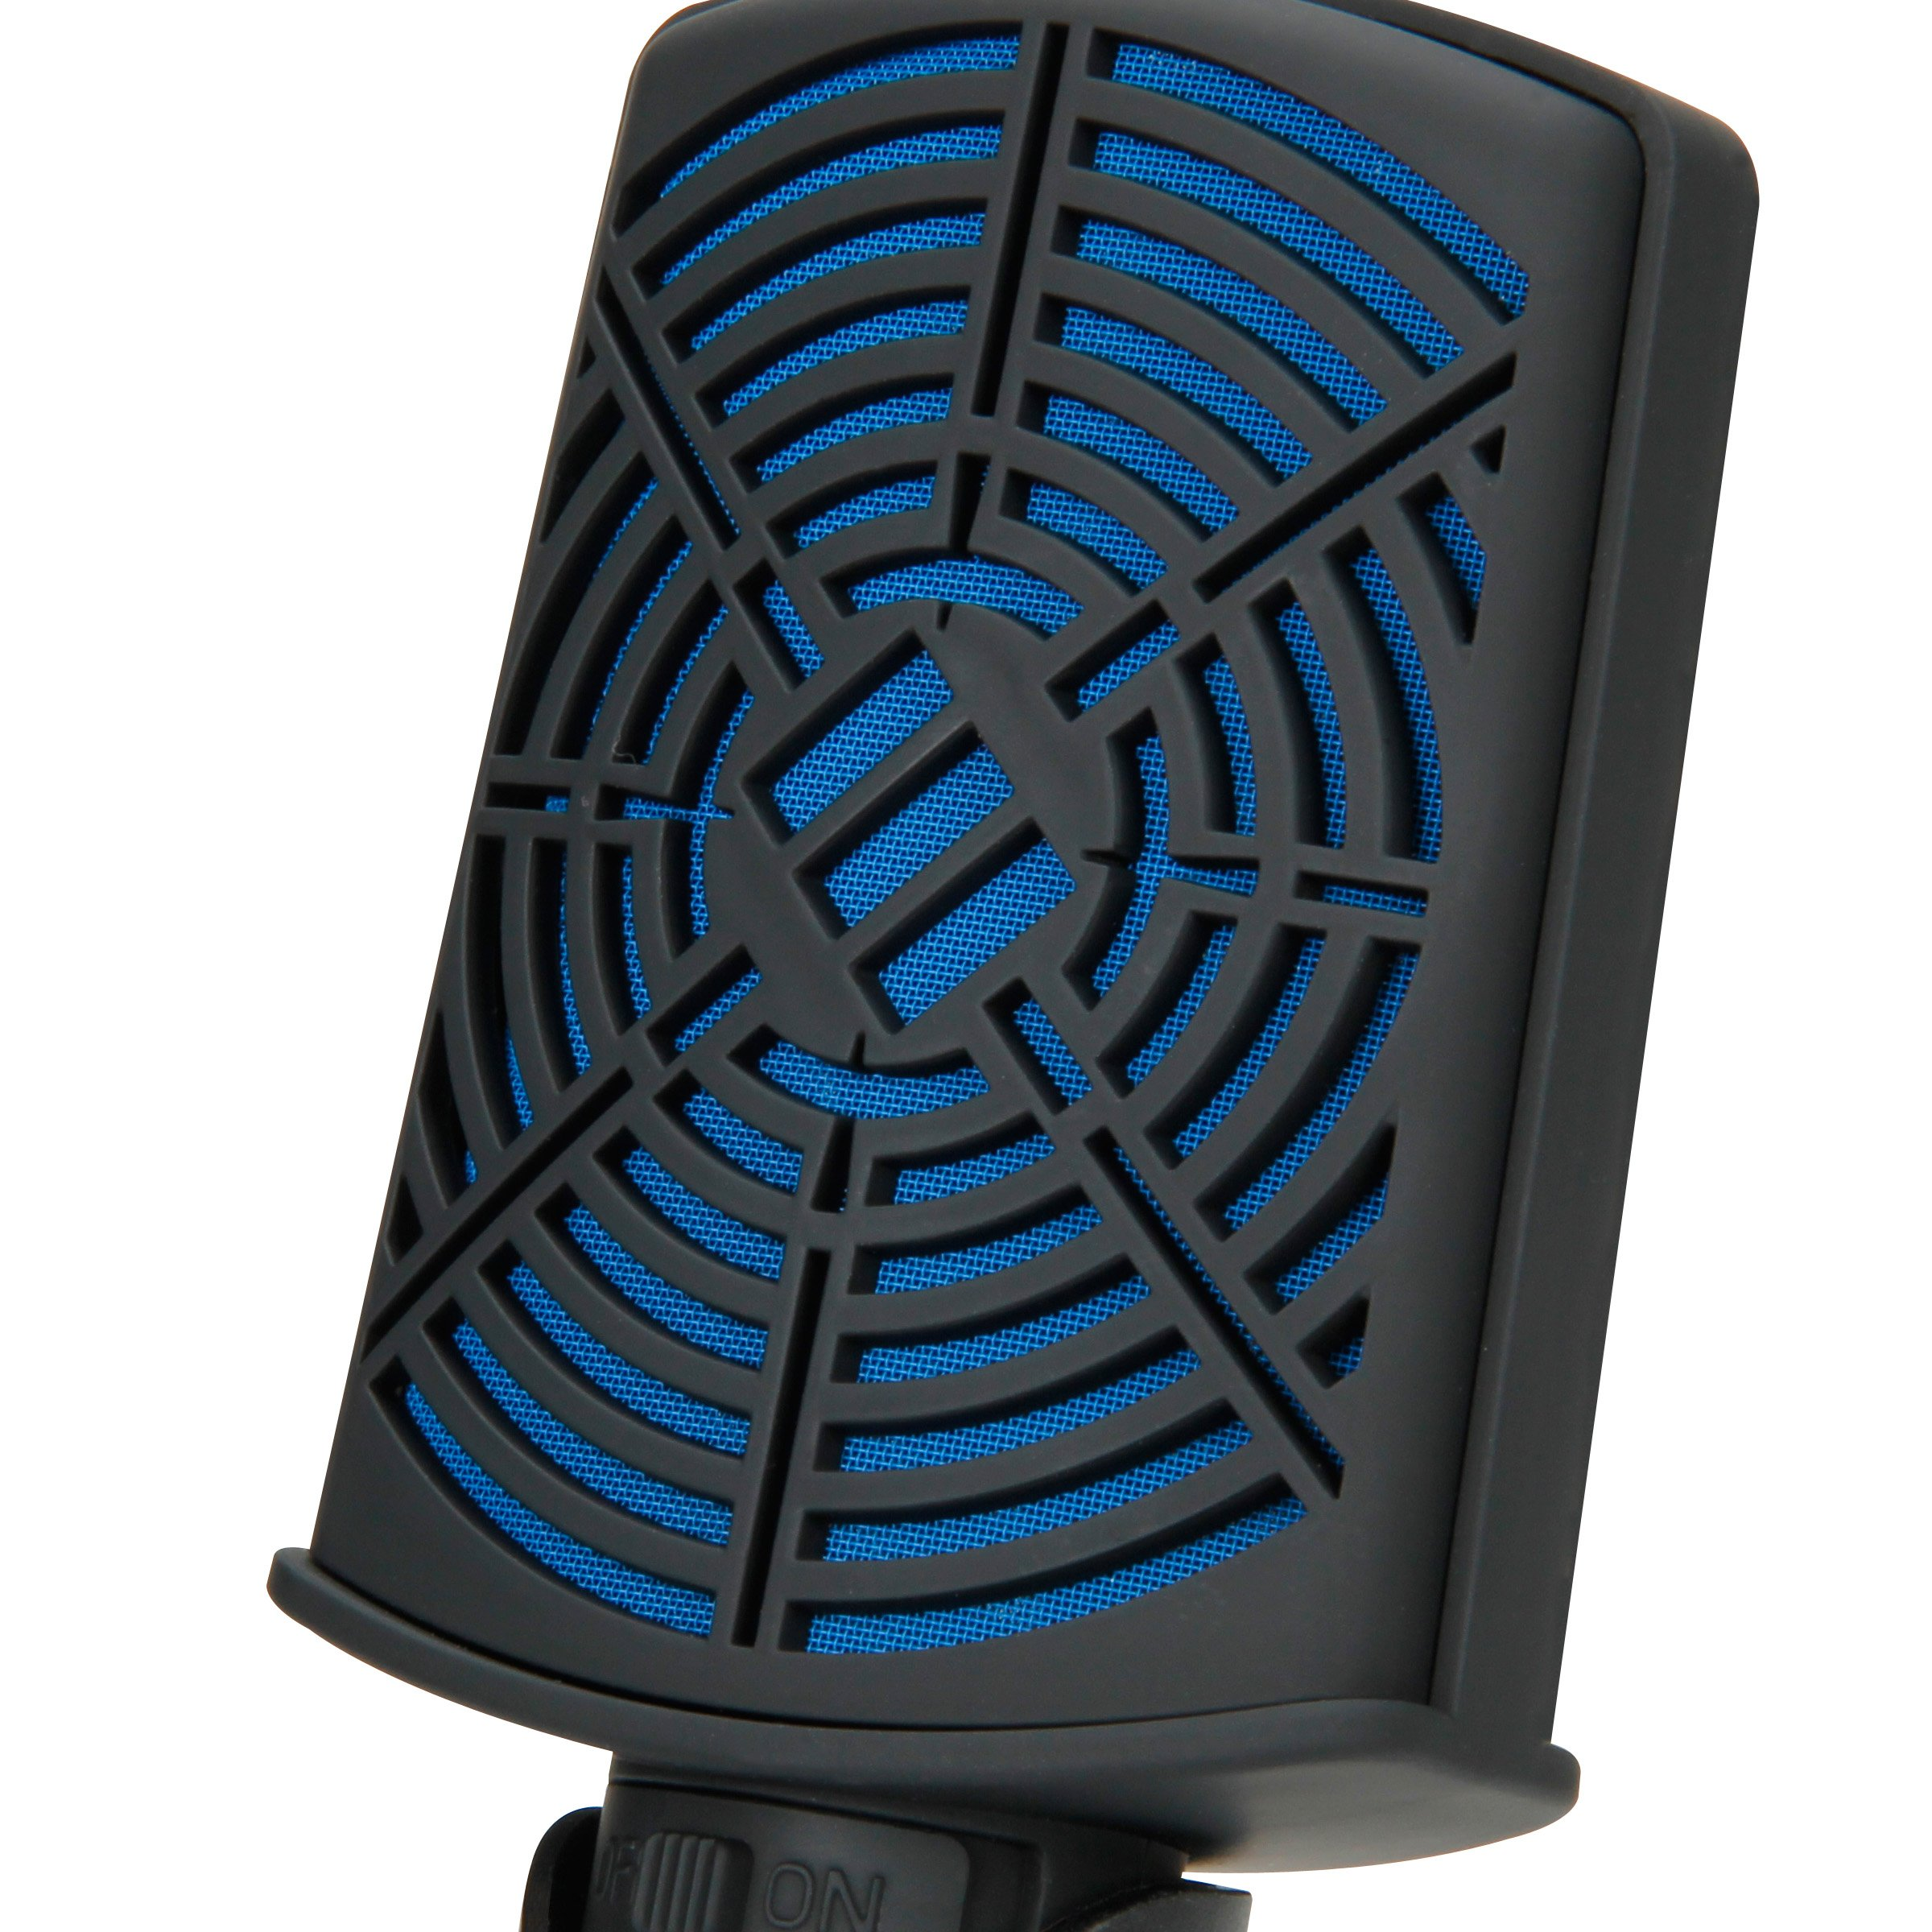 ENHANCE USB Condenser Gaming Microphone - Computer Desktop Mic for Streaming & Recording with Adjustable Stand Design and Mute Switch - For Skype, Conference Calls, Twitch, Youtube, and Discord - Blue by ENHANCE (Image #7)